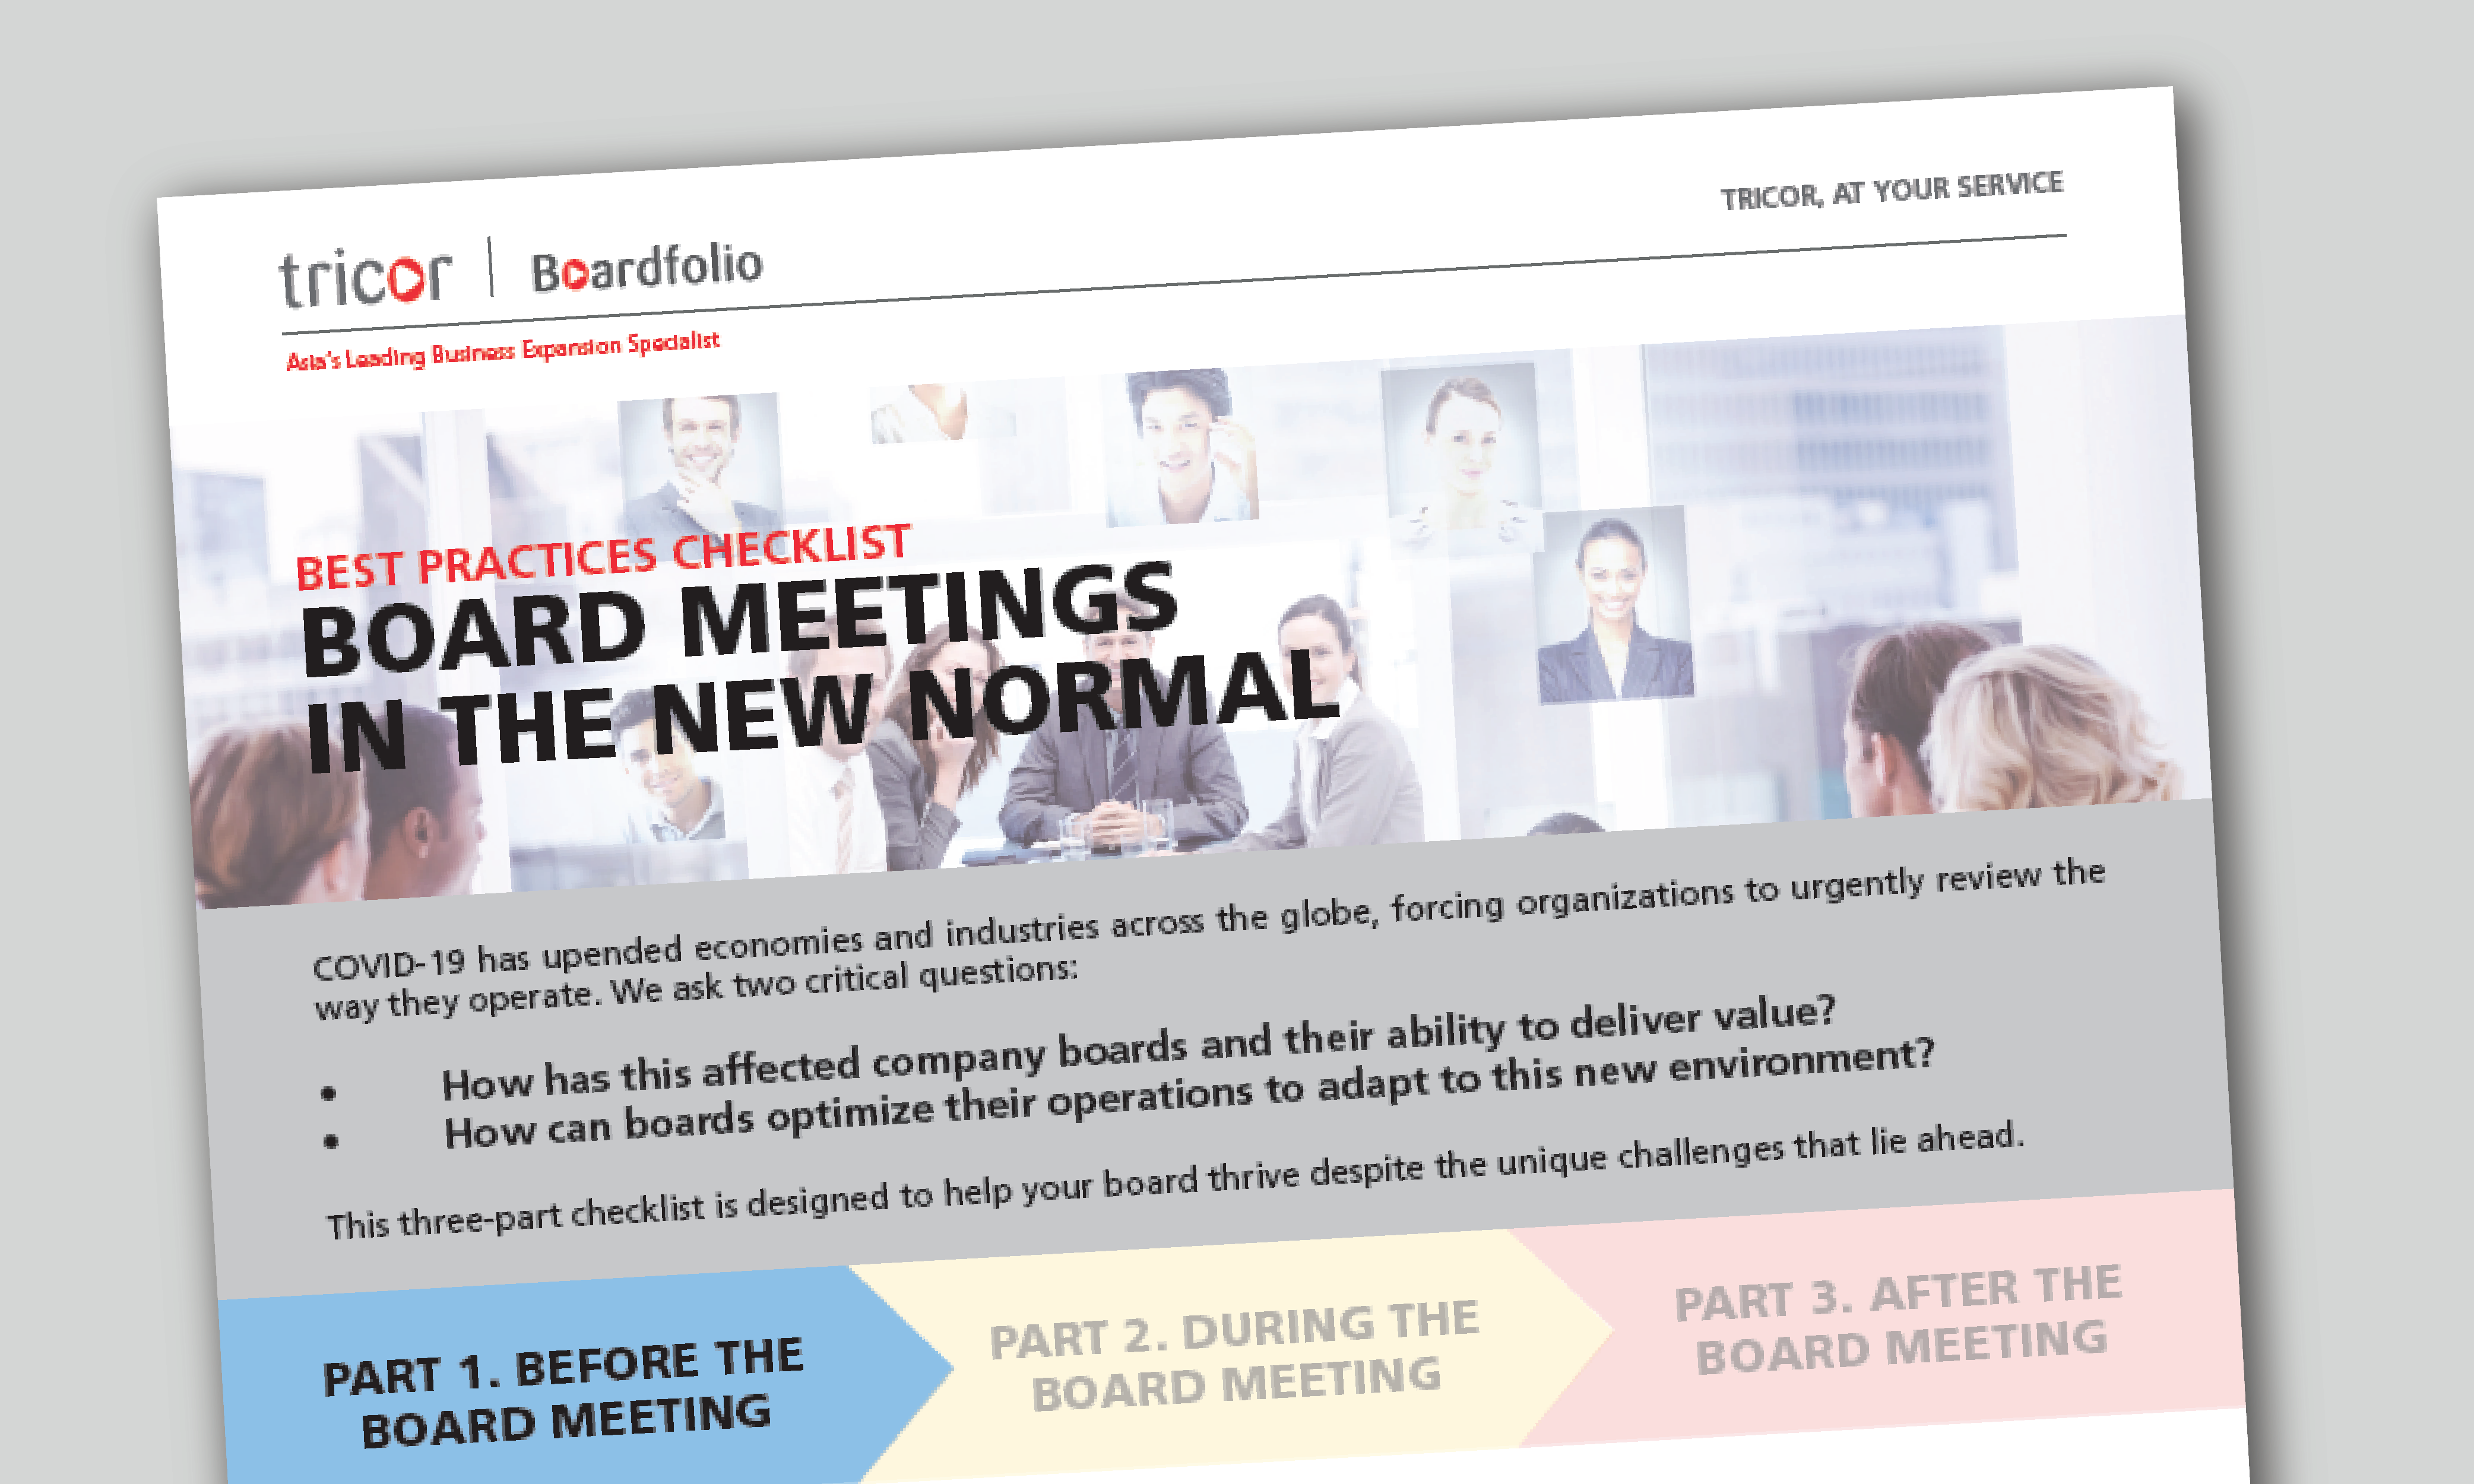 Board Meetings in the New Normal - Part 1